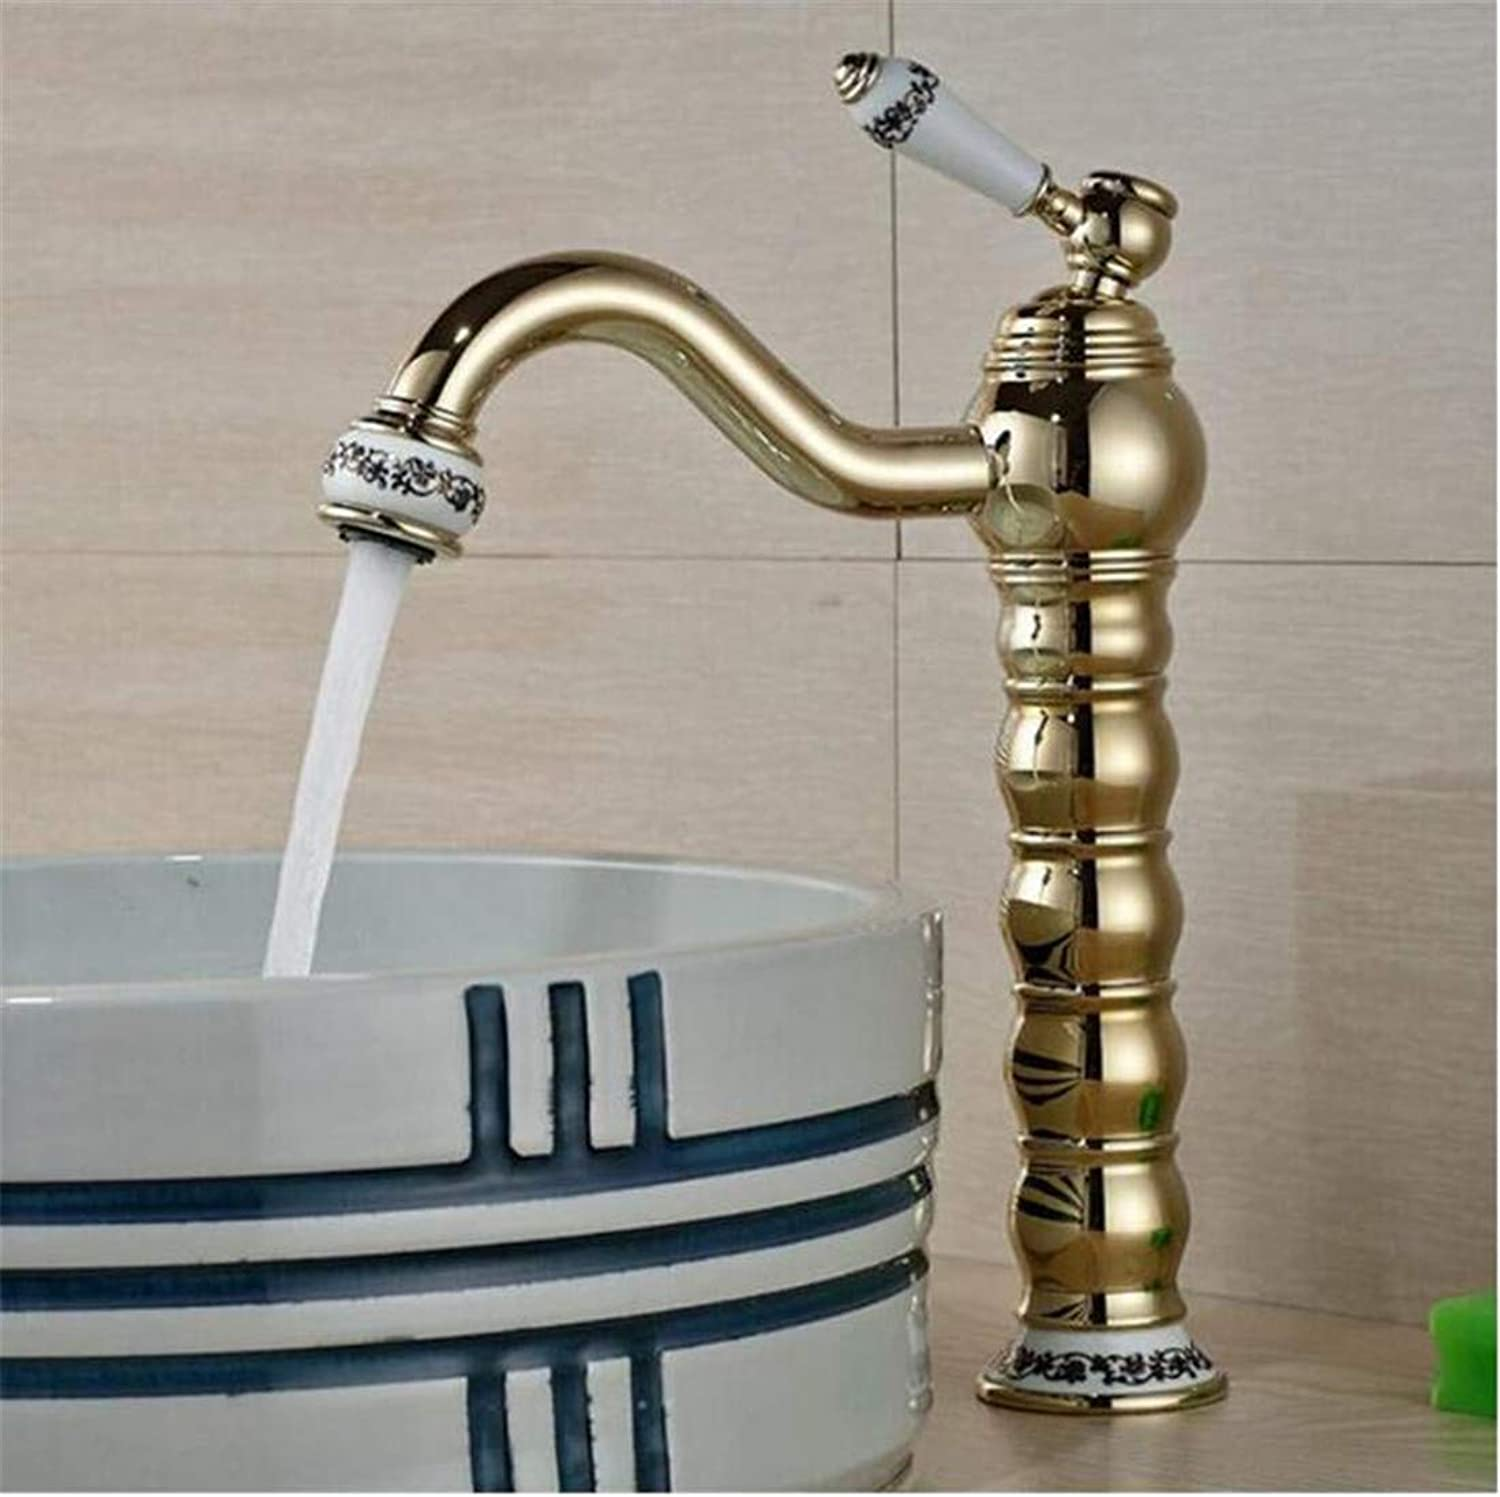 Faucet Kitchen Bathroom Stainless Steel Faucet Faucet Washbasin Mixer golden Brass Bathroom Basin Faucet Vanity Sink Mxier Tap Hot and Cold Water Ceramic